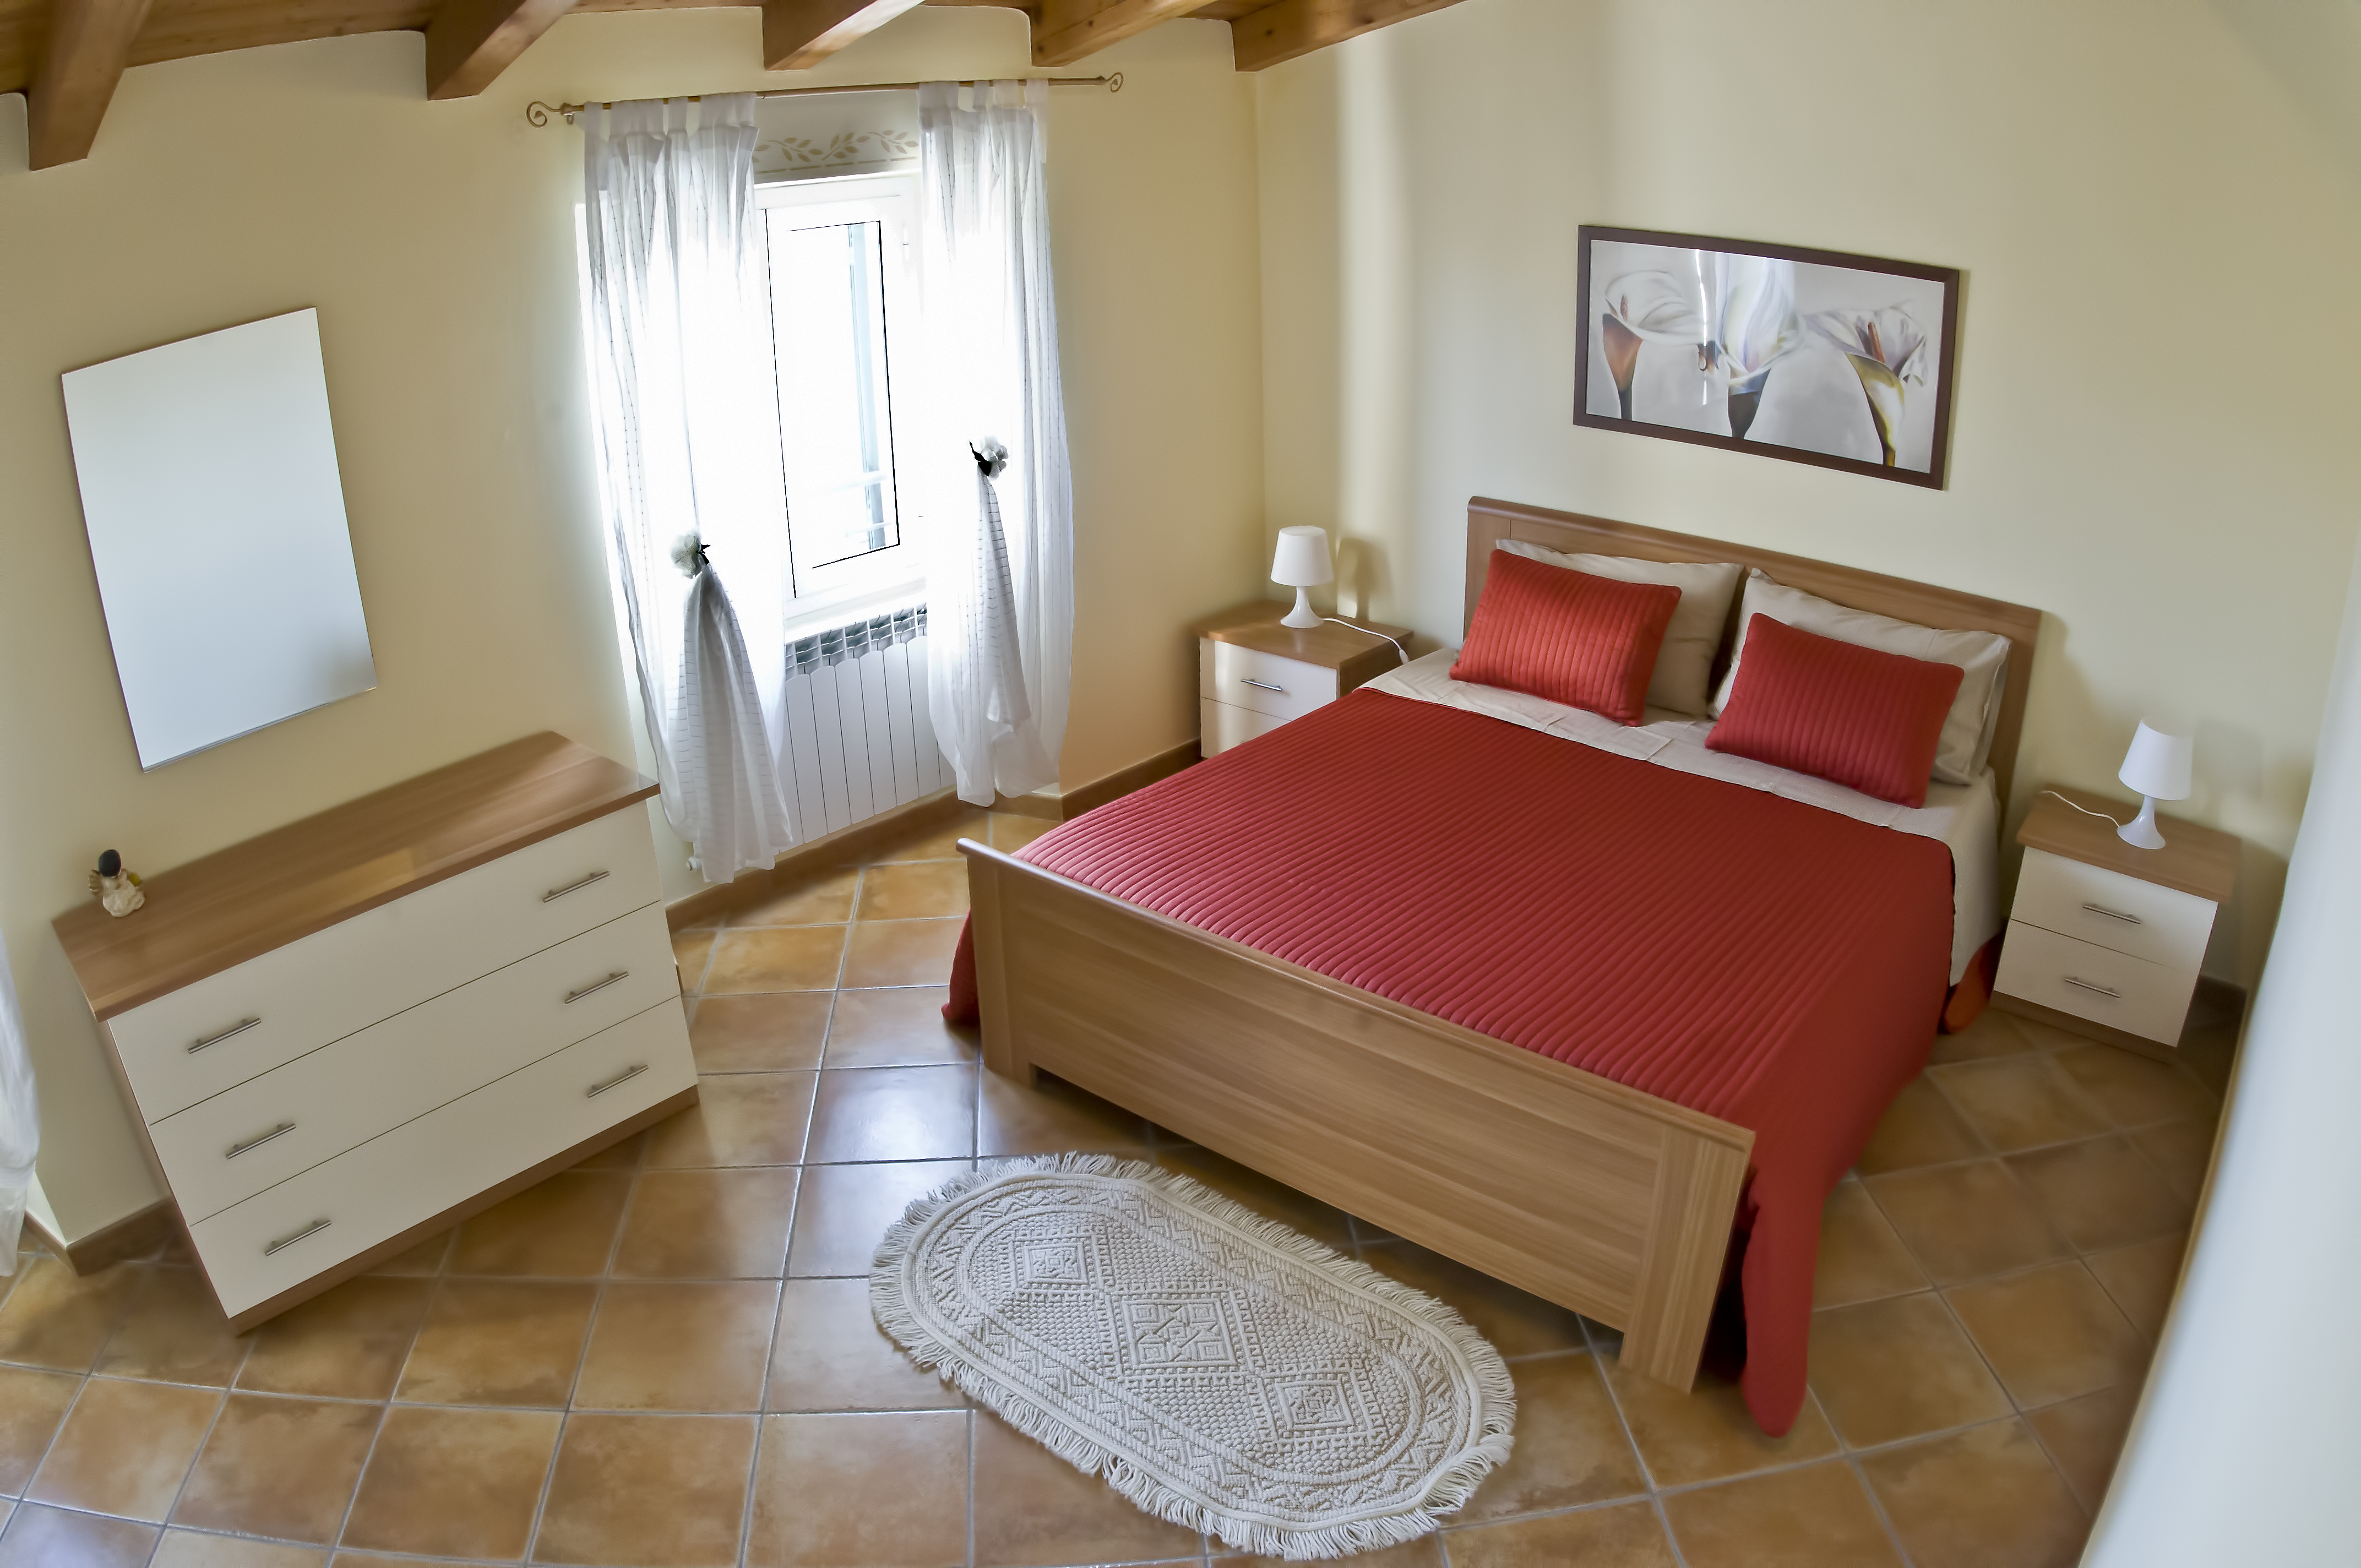 Agriturismo La Giuggiola - Rooms for rent with private bathroom and kitchen